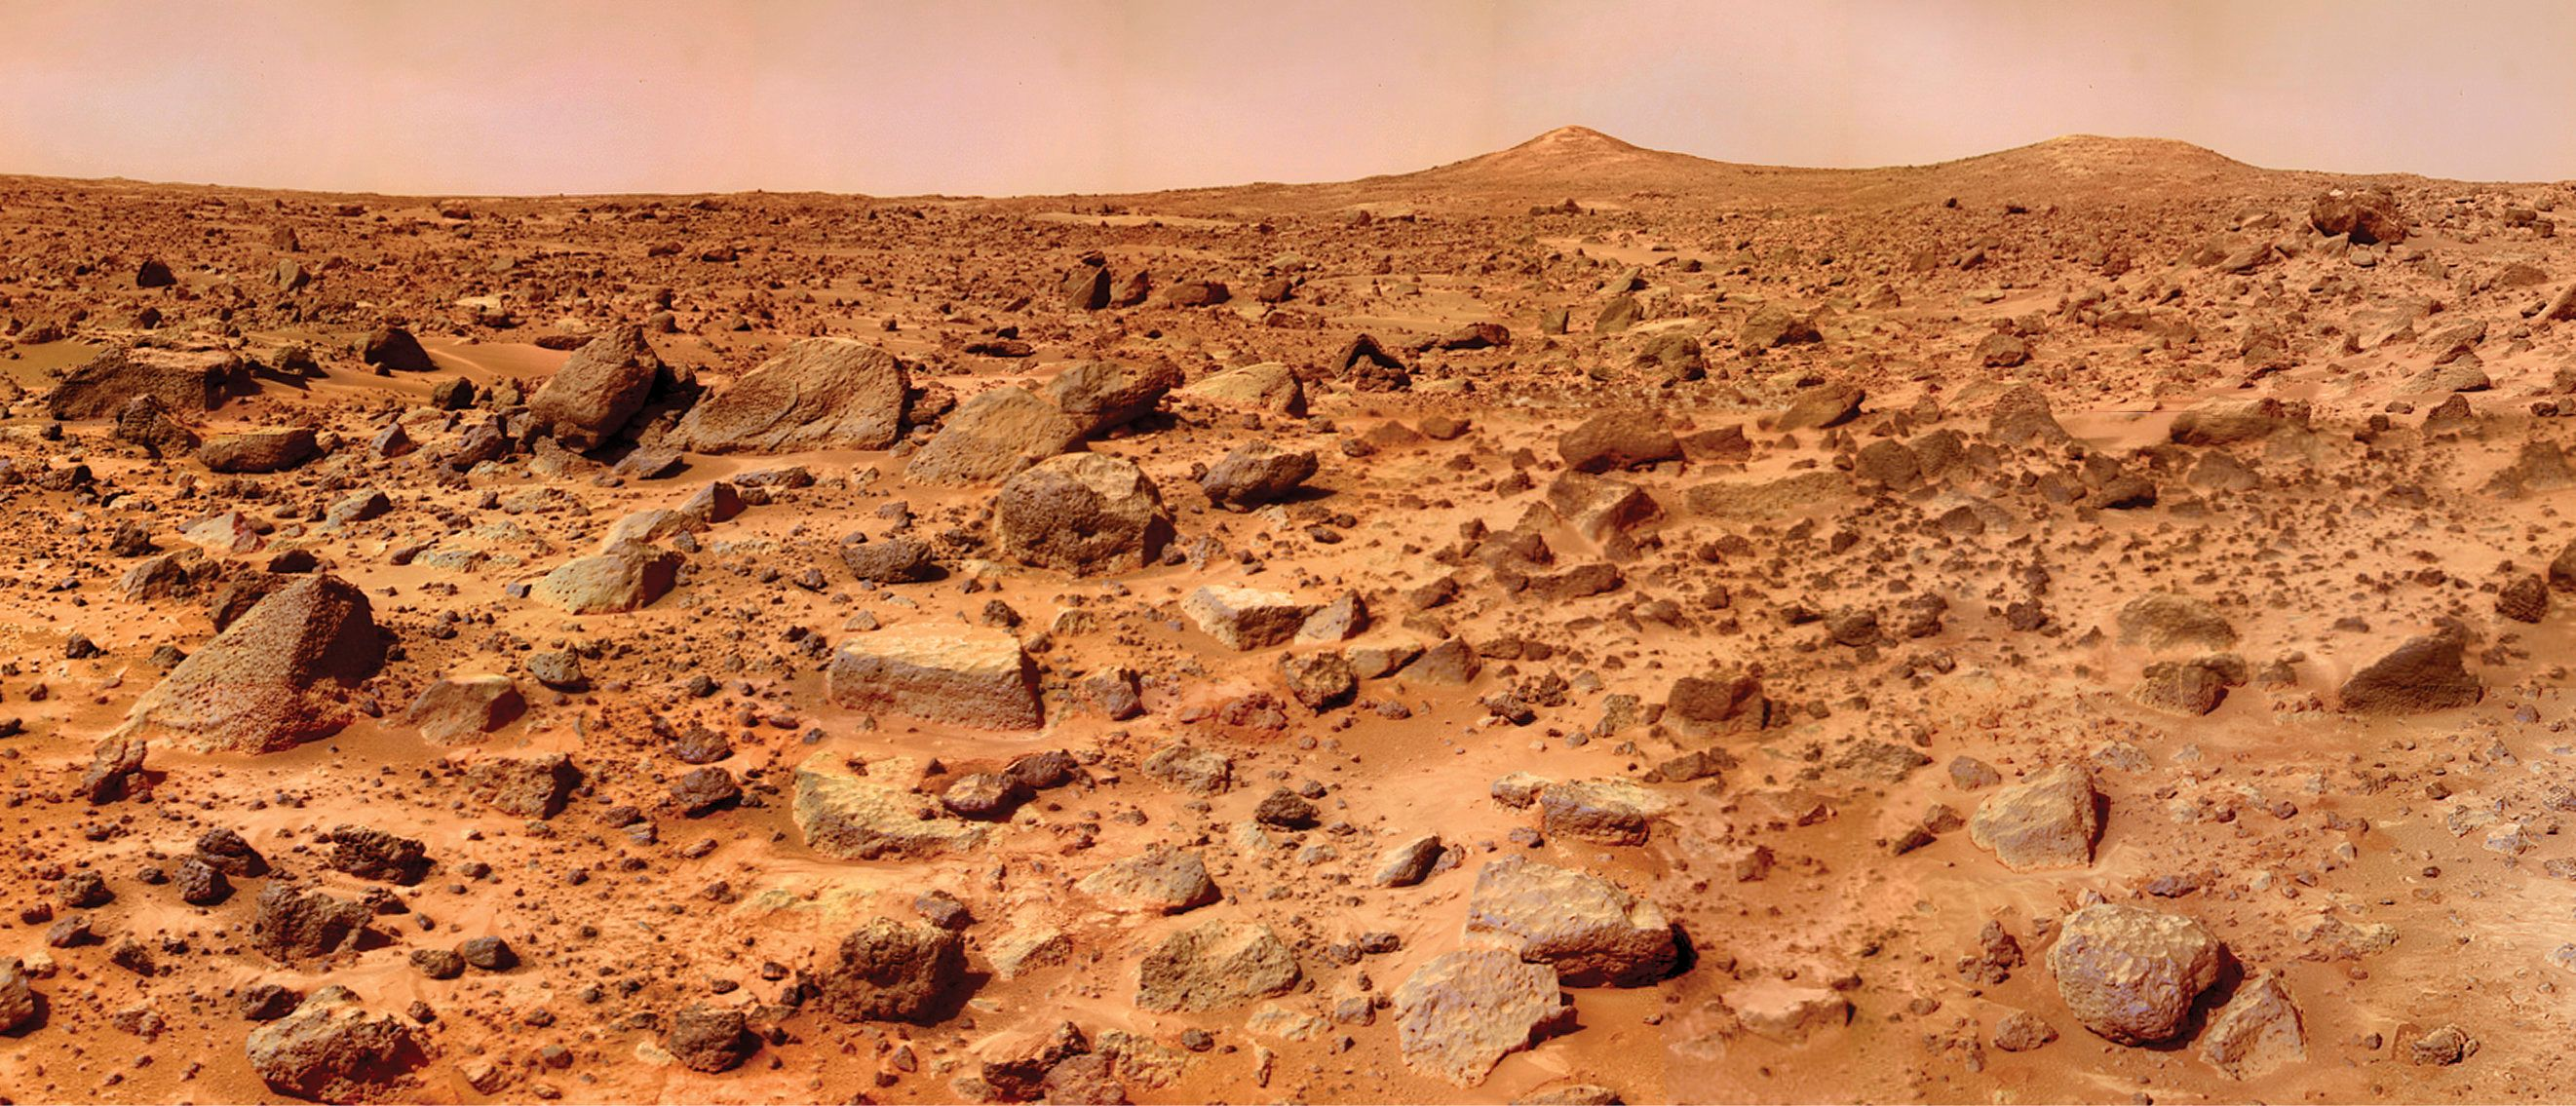 A composite of several images taken by the Mars Pathfinder lander shows the boulder-strewn surface of Mars at Chryse Planitia. In the distance are two hills dubbed 'Twin Peaks,' which are about 100 feet (30 meters) tall.